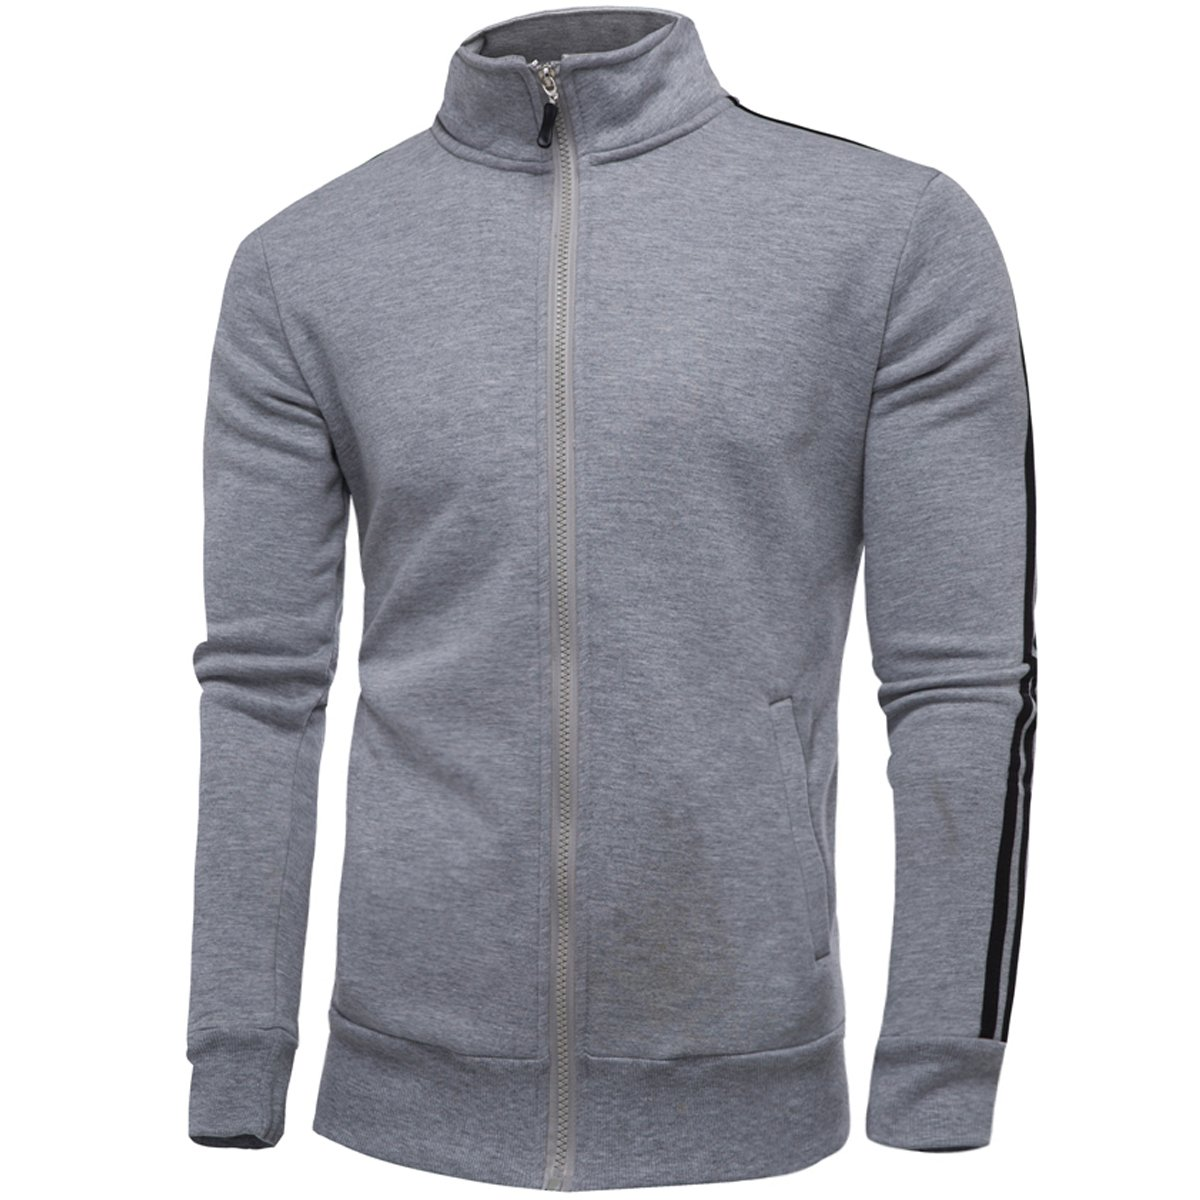 YFFUSHI Mens Casual Jogging Full Zip Sports Long Sleeve Jacket Active Training Basic Designed